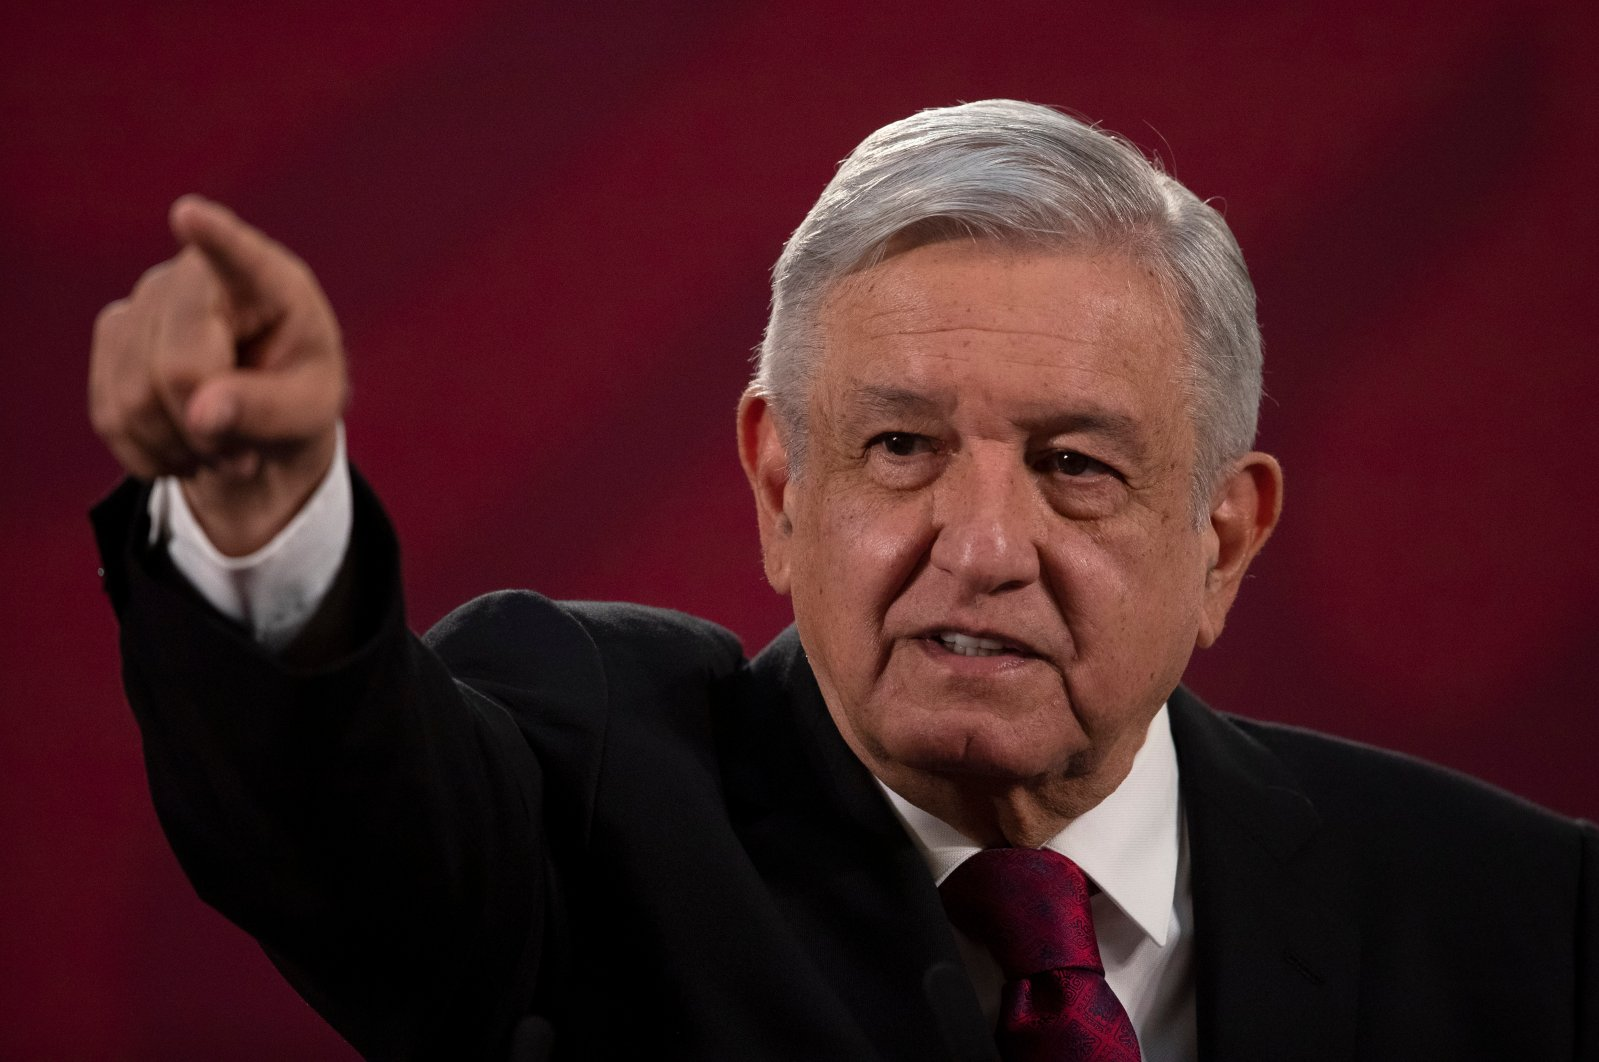 Mexico's President Andres Manuel Lopez Obrador gives his daily, morning news conference at the presidential palace, Palacio Nacional, in Mexico City, July 13, 2020. (AP Photo)